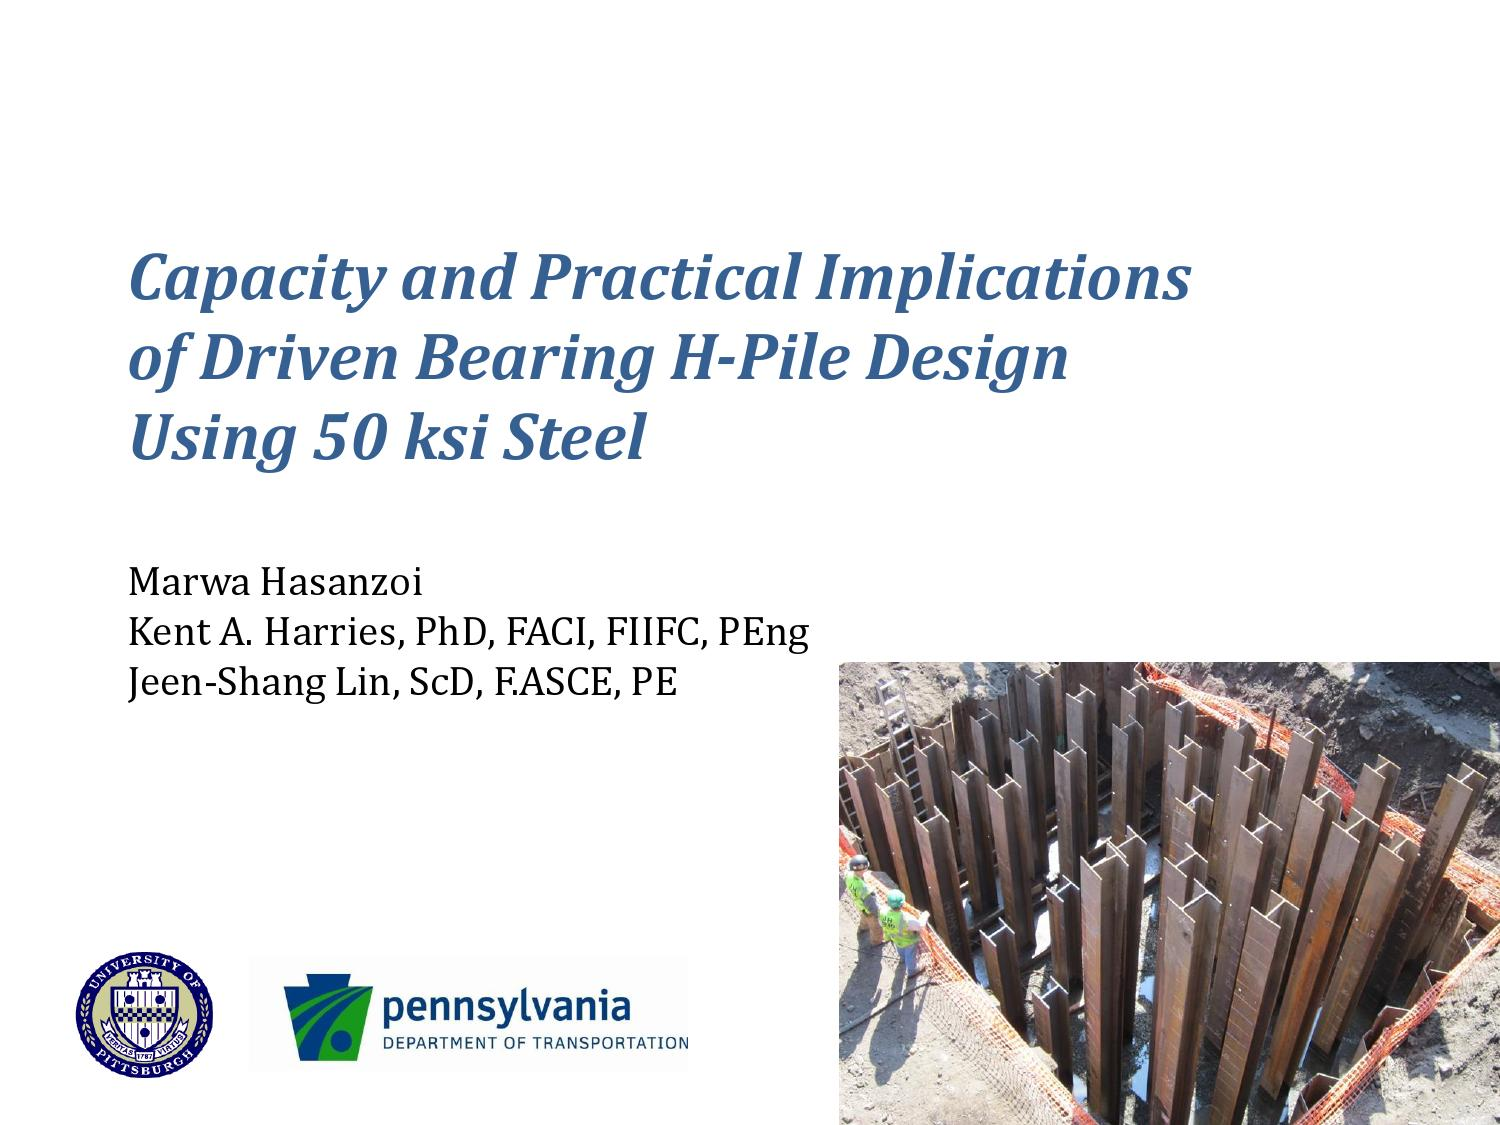 Capacity and Practical Implications of Driven Bearing H-Pile Design